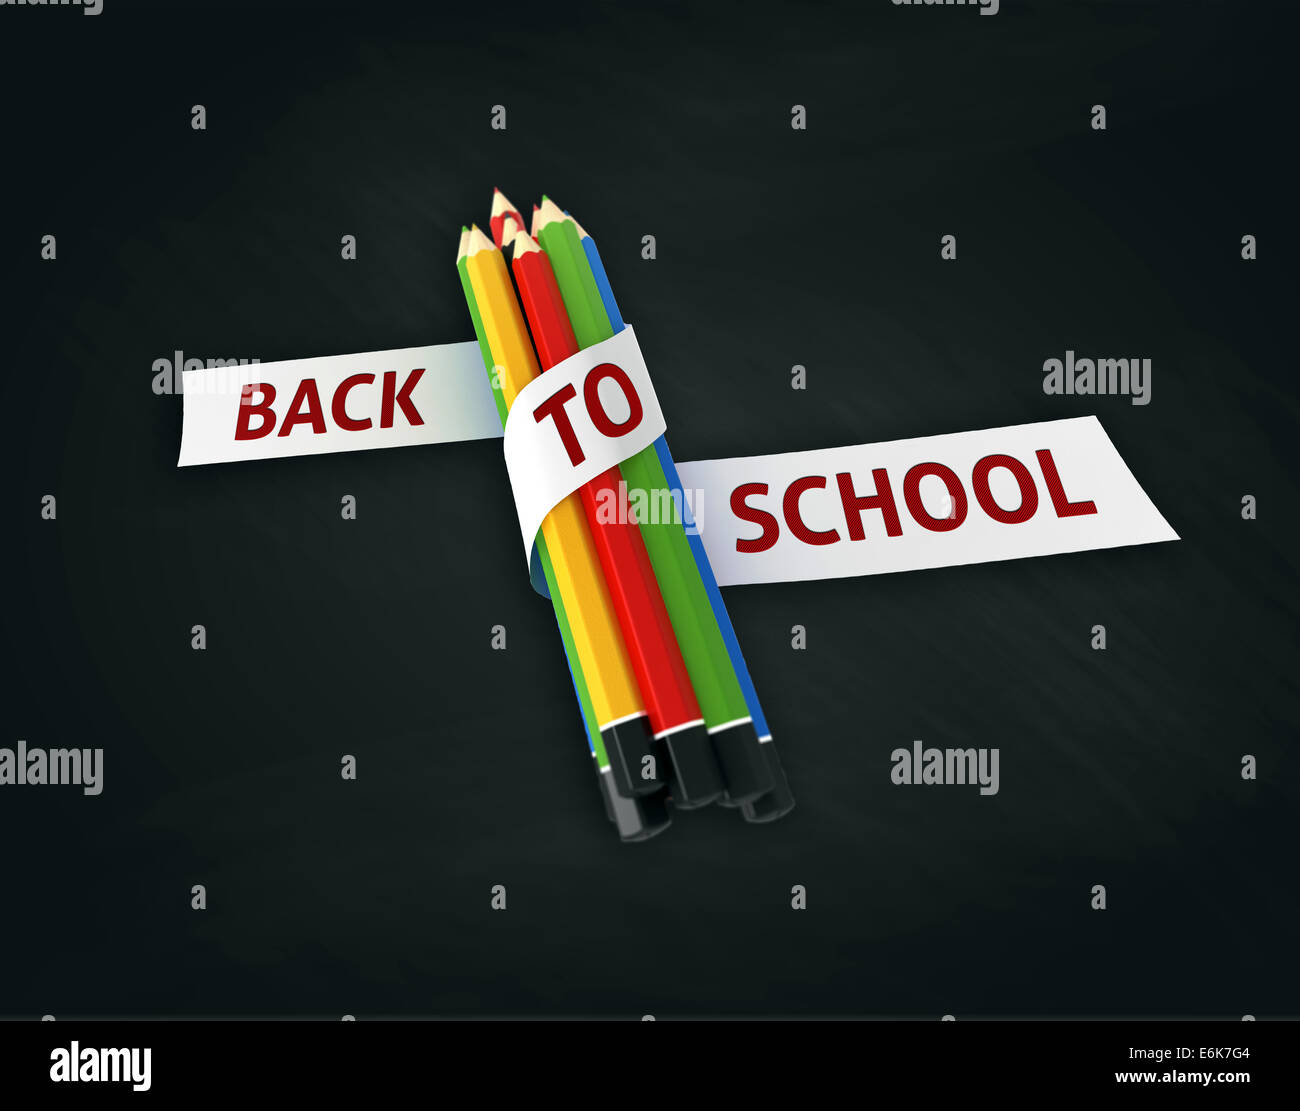 Welcome Back To School Quote Embroidered On White Ribbon On Colorful  Crayons   Illustration Concept On Blackboard Background